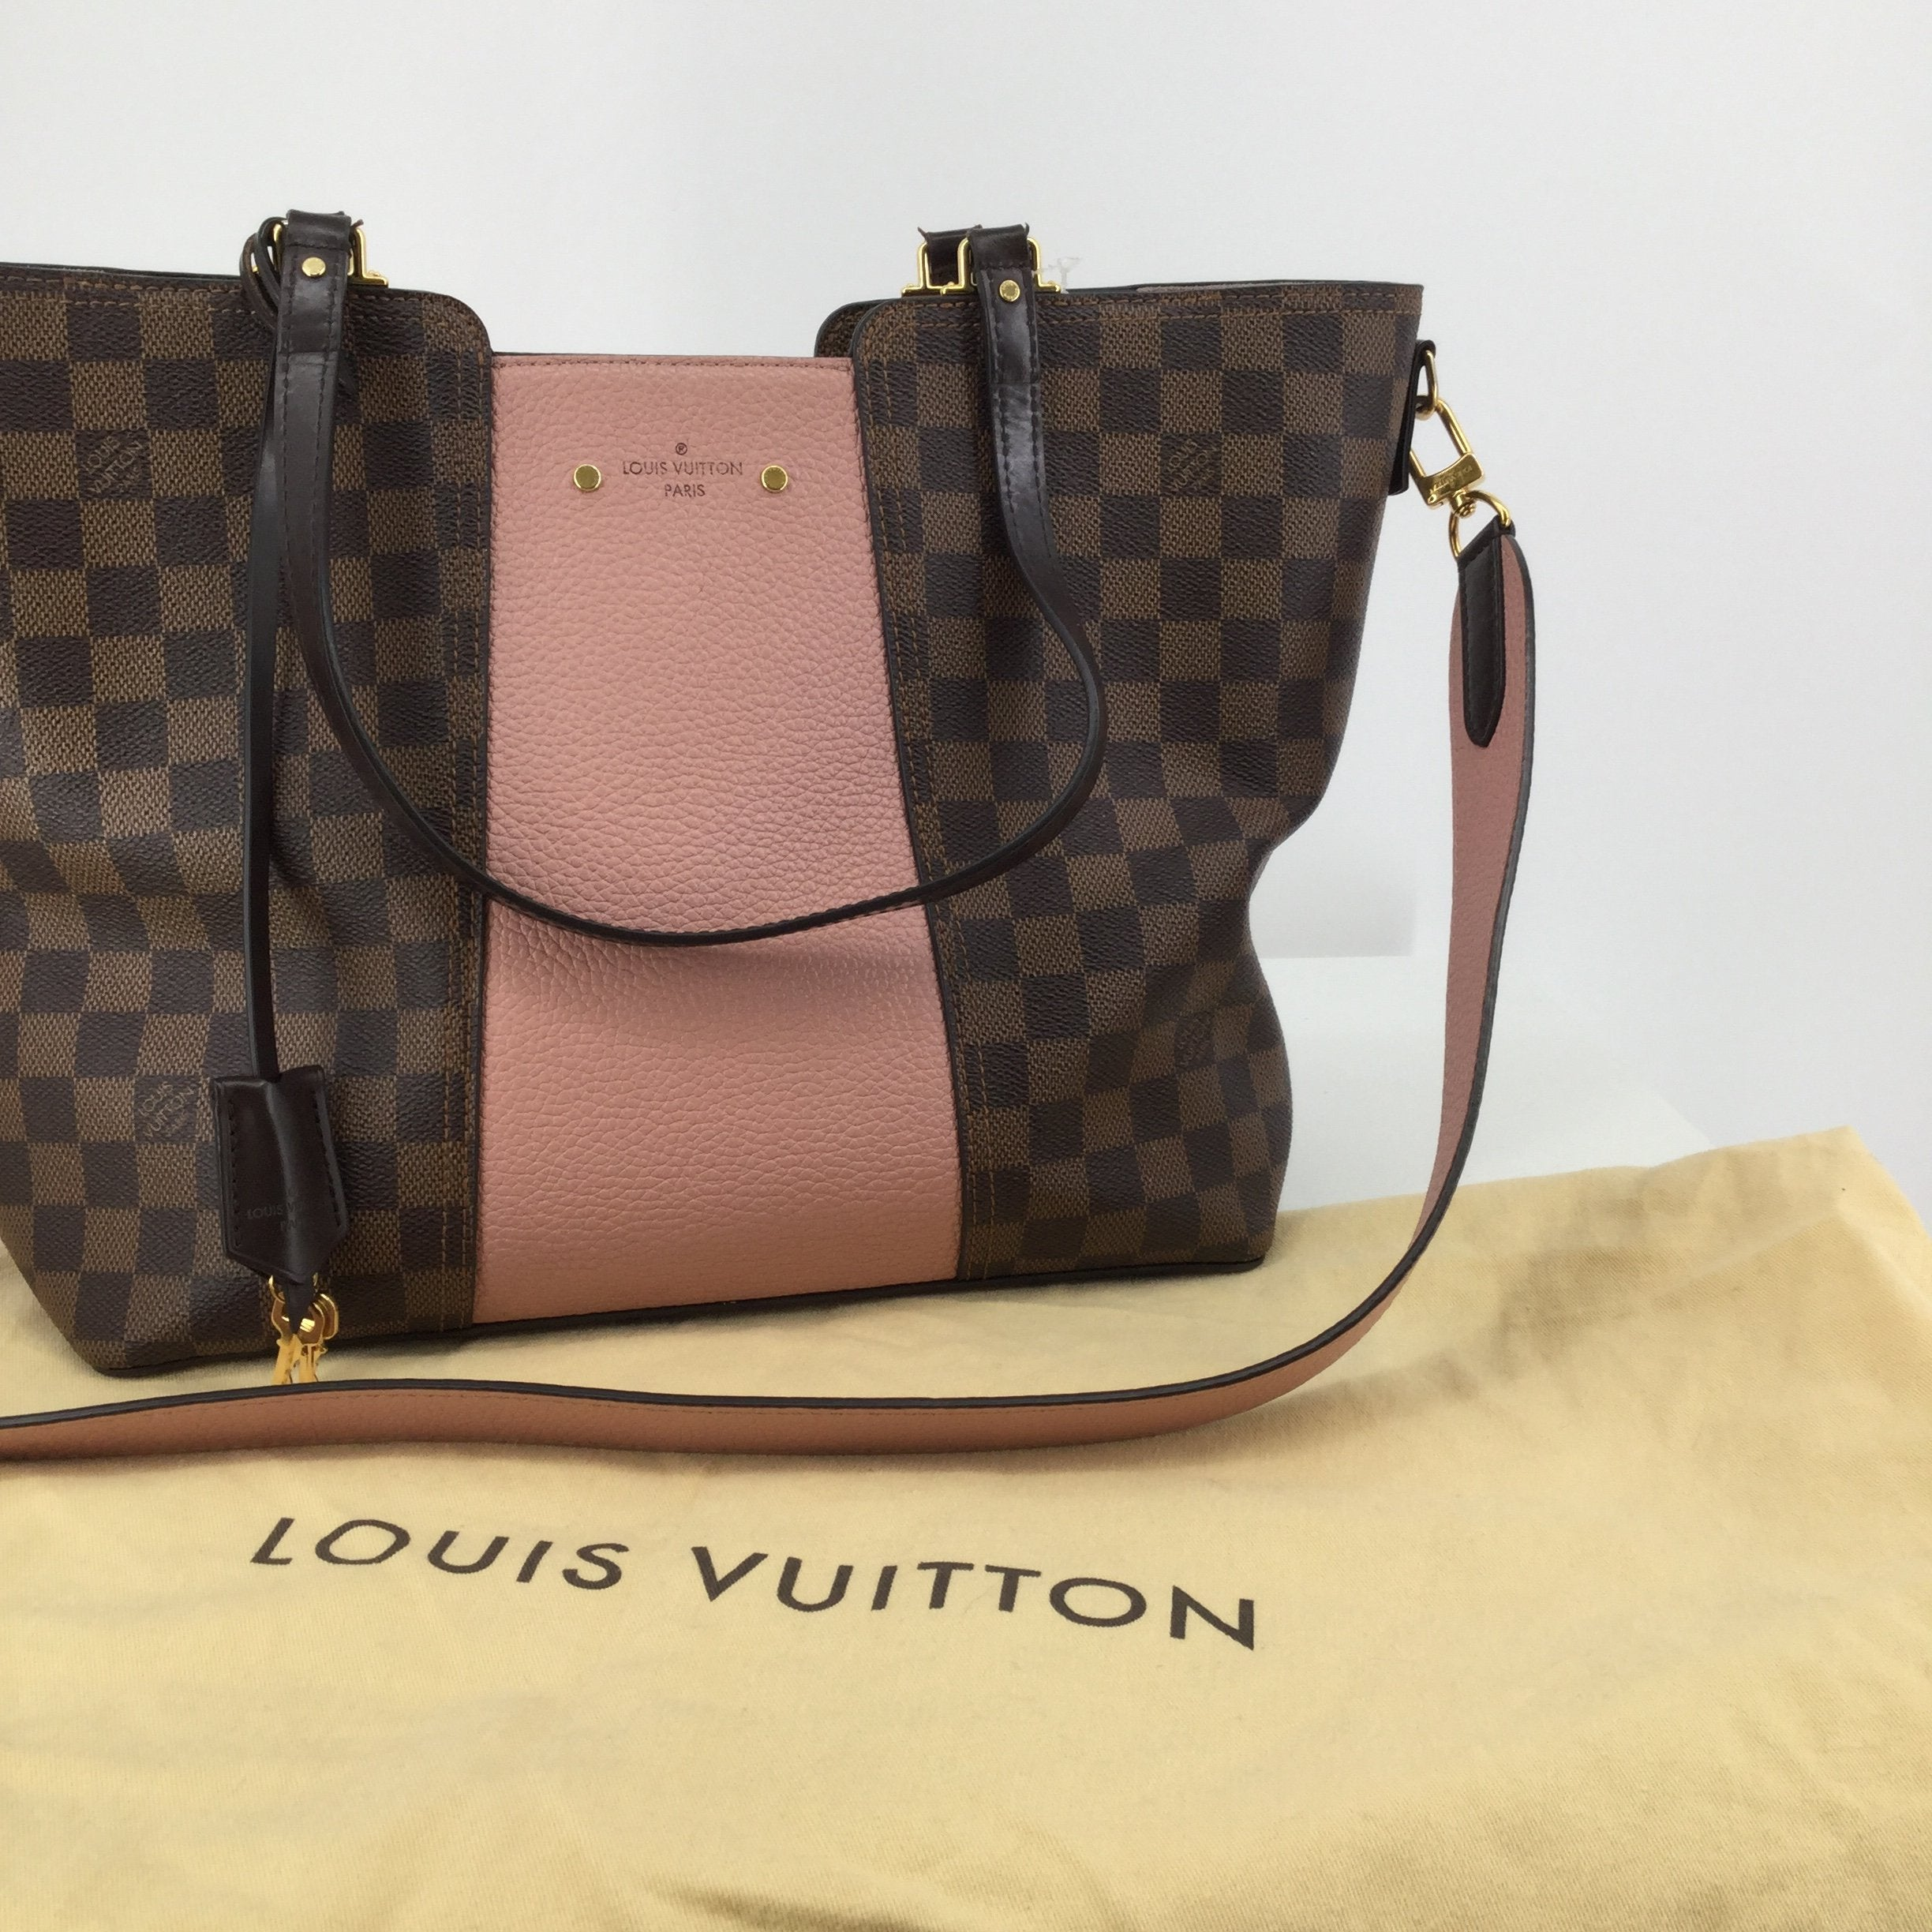 Louis Vuitton Brown Leather Ebene Jersey Magnolia Tote - <P>EVERY GIRL NEEDS A LOUIS VUITTON! THIS BEAUTIFUL BAG COMES WITH A CERTIFICATE OF AUTHENTICITY FROM ENTRUPY! IT IS PINK AND BROWN ON THE OUTSIDE AND THE INTERIOR IS LIGHT PINK. INSIDE THE BAG THERE ARE SEVERAL SLIP POCKETS FOR STORAGE. IT COMES WITH SHOULDER STRAPS AND A REMOVABLE CROSSBODY STRAP. THE OUTSIDE OF THIS BAG IS IN GREAT CONDITION WITH LITTLE TO NO WEAR. THE INSIDE IS GENTLY USED WITH SOME MINOR WEAR (SEE PHOTOS). SLEEPER BAG INCLUDED.</P>